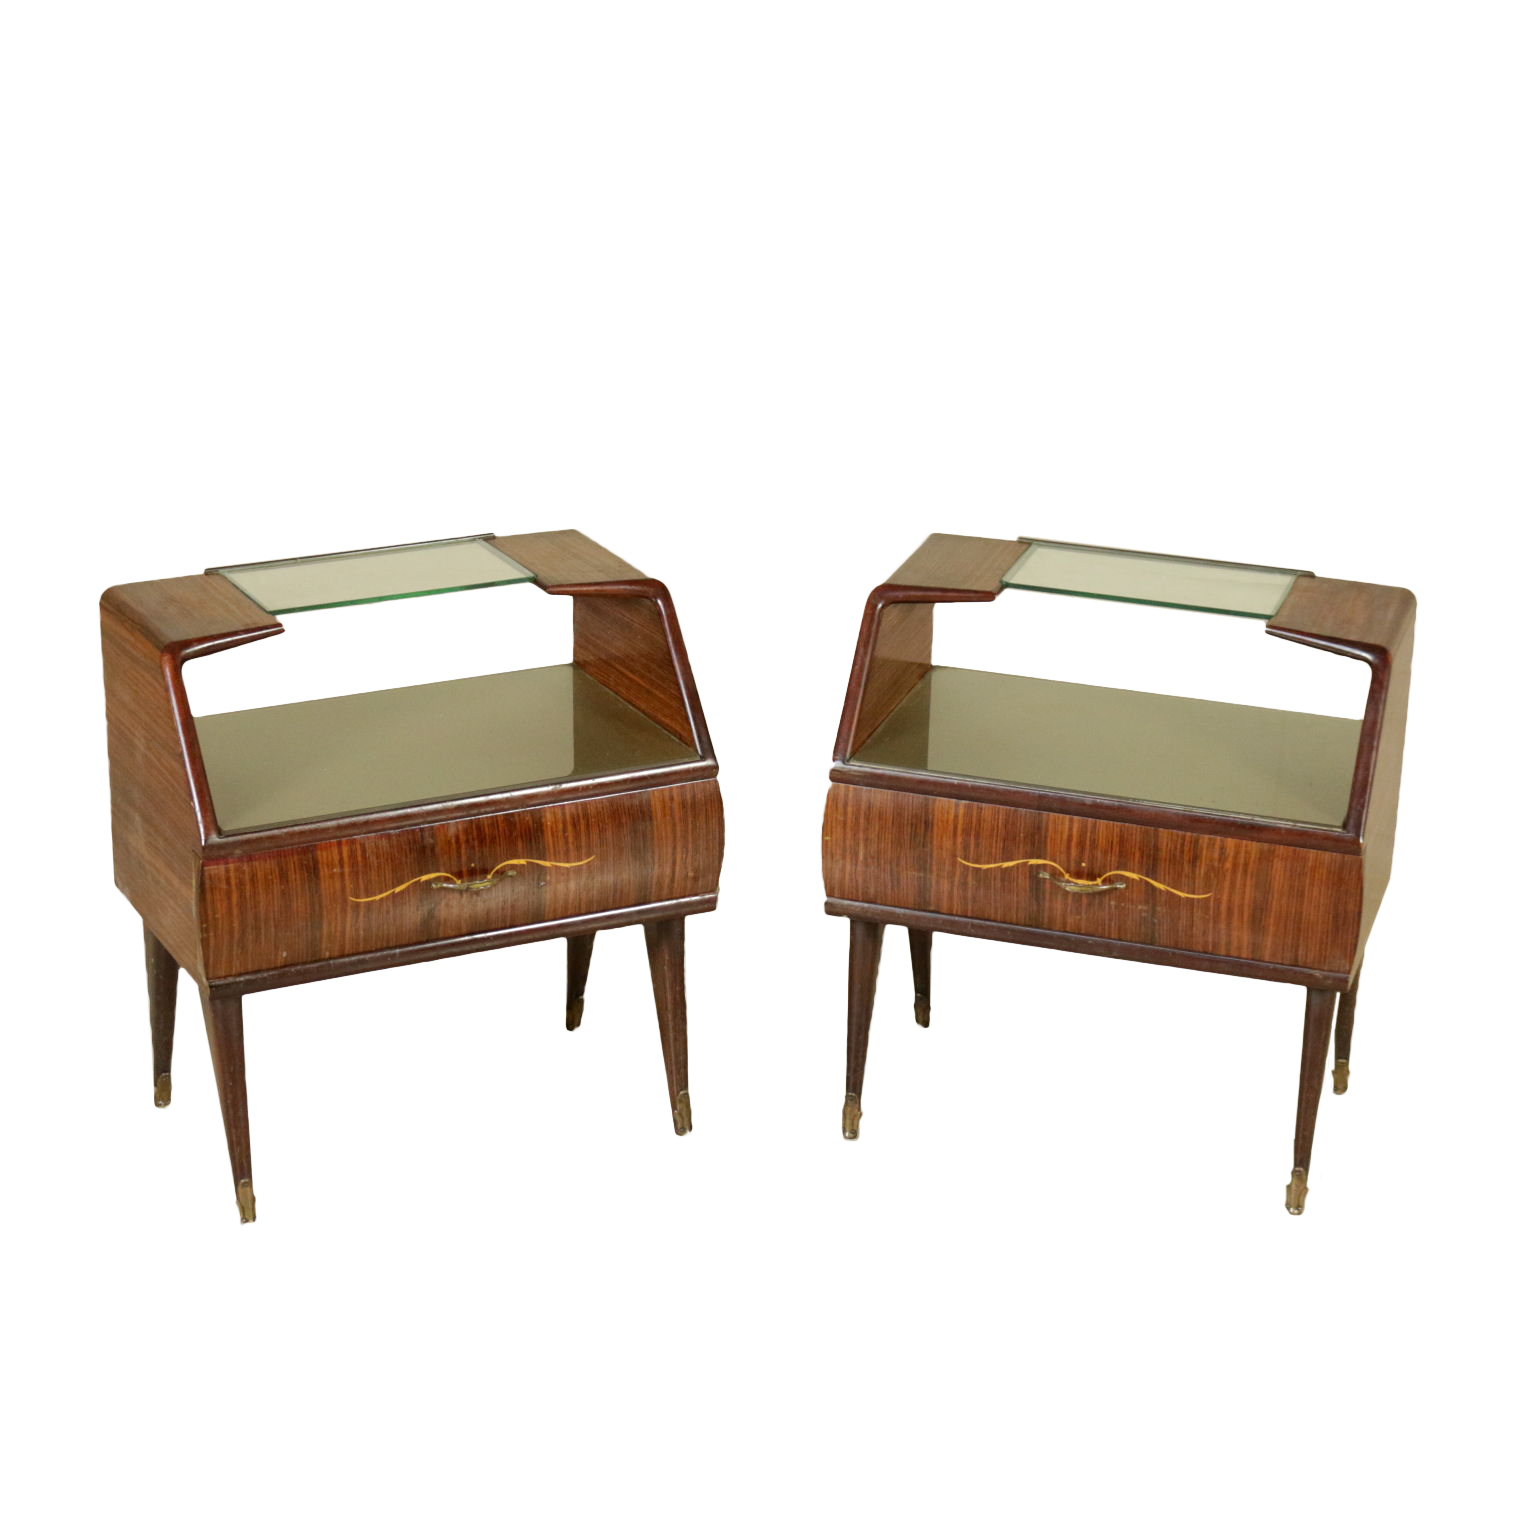 Bedside tables of the 50s furniture modern design dimanoinmano it